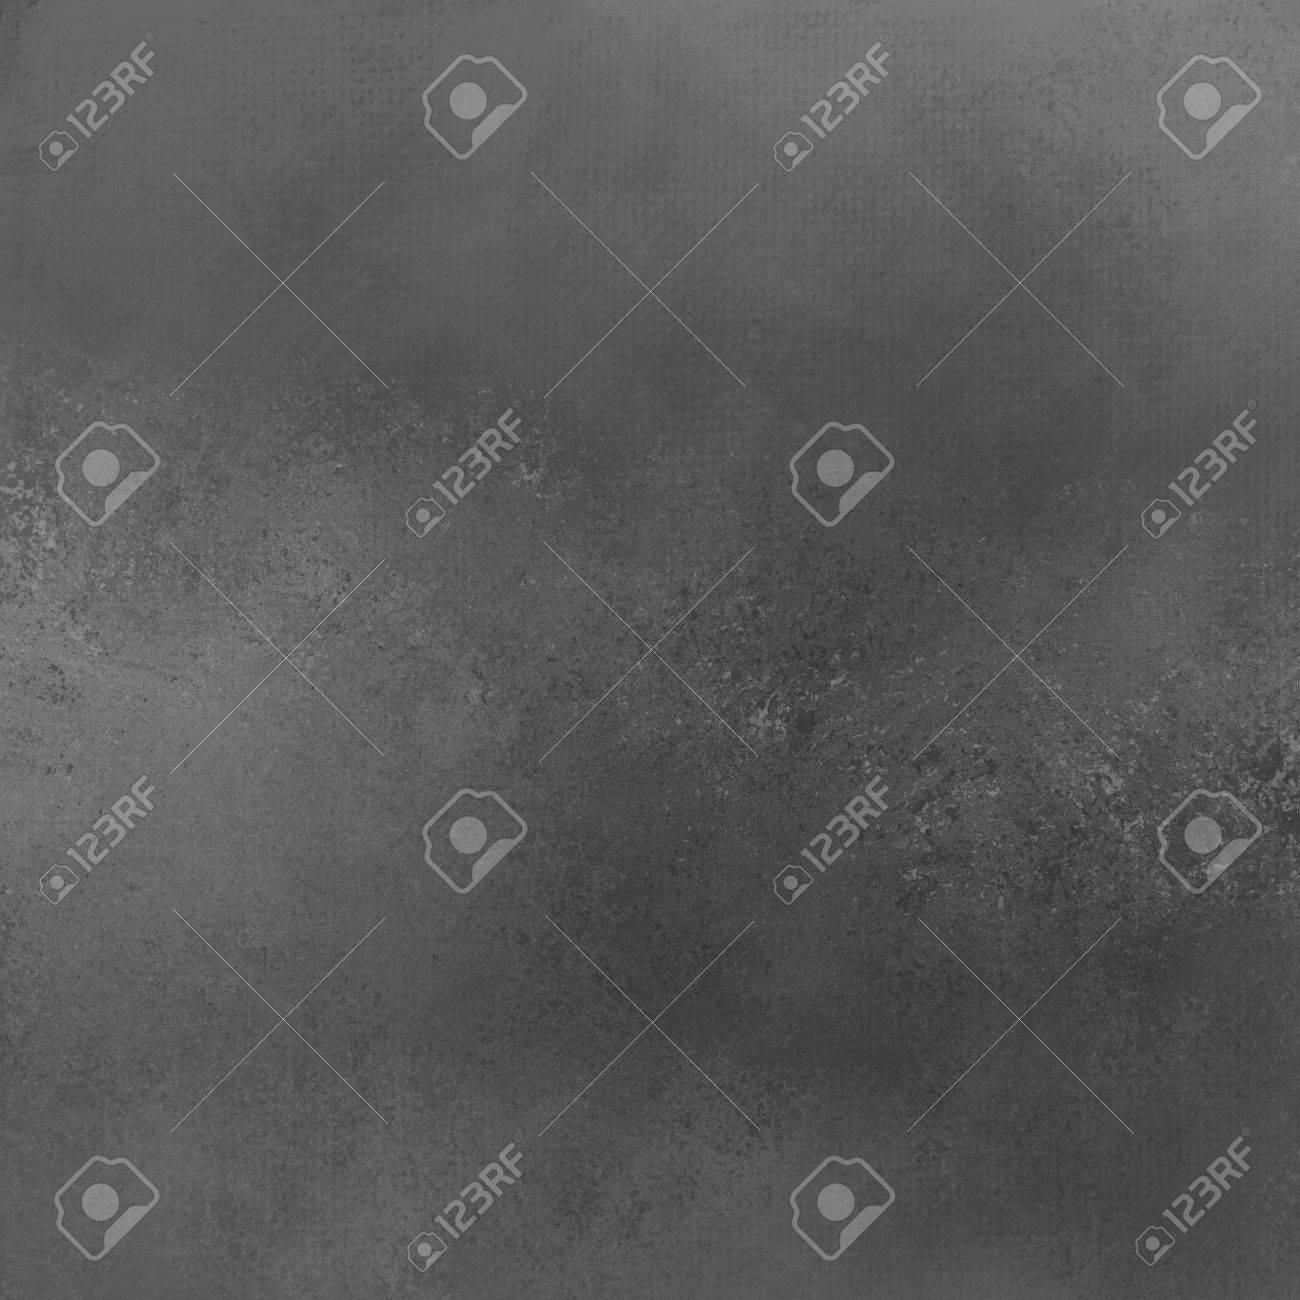 black charcoal gray background with faint canvas texture - 54420634